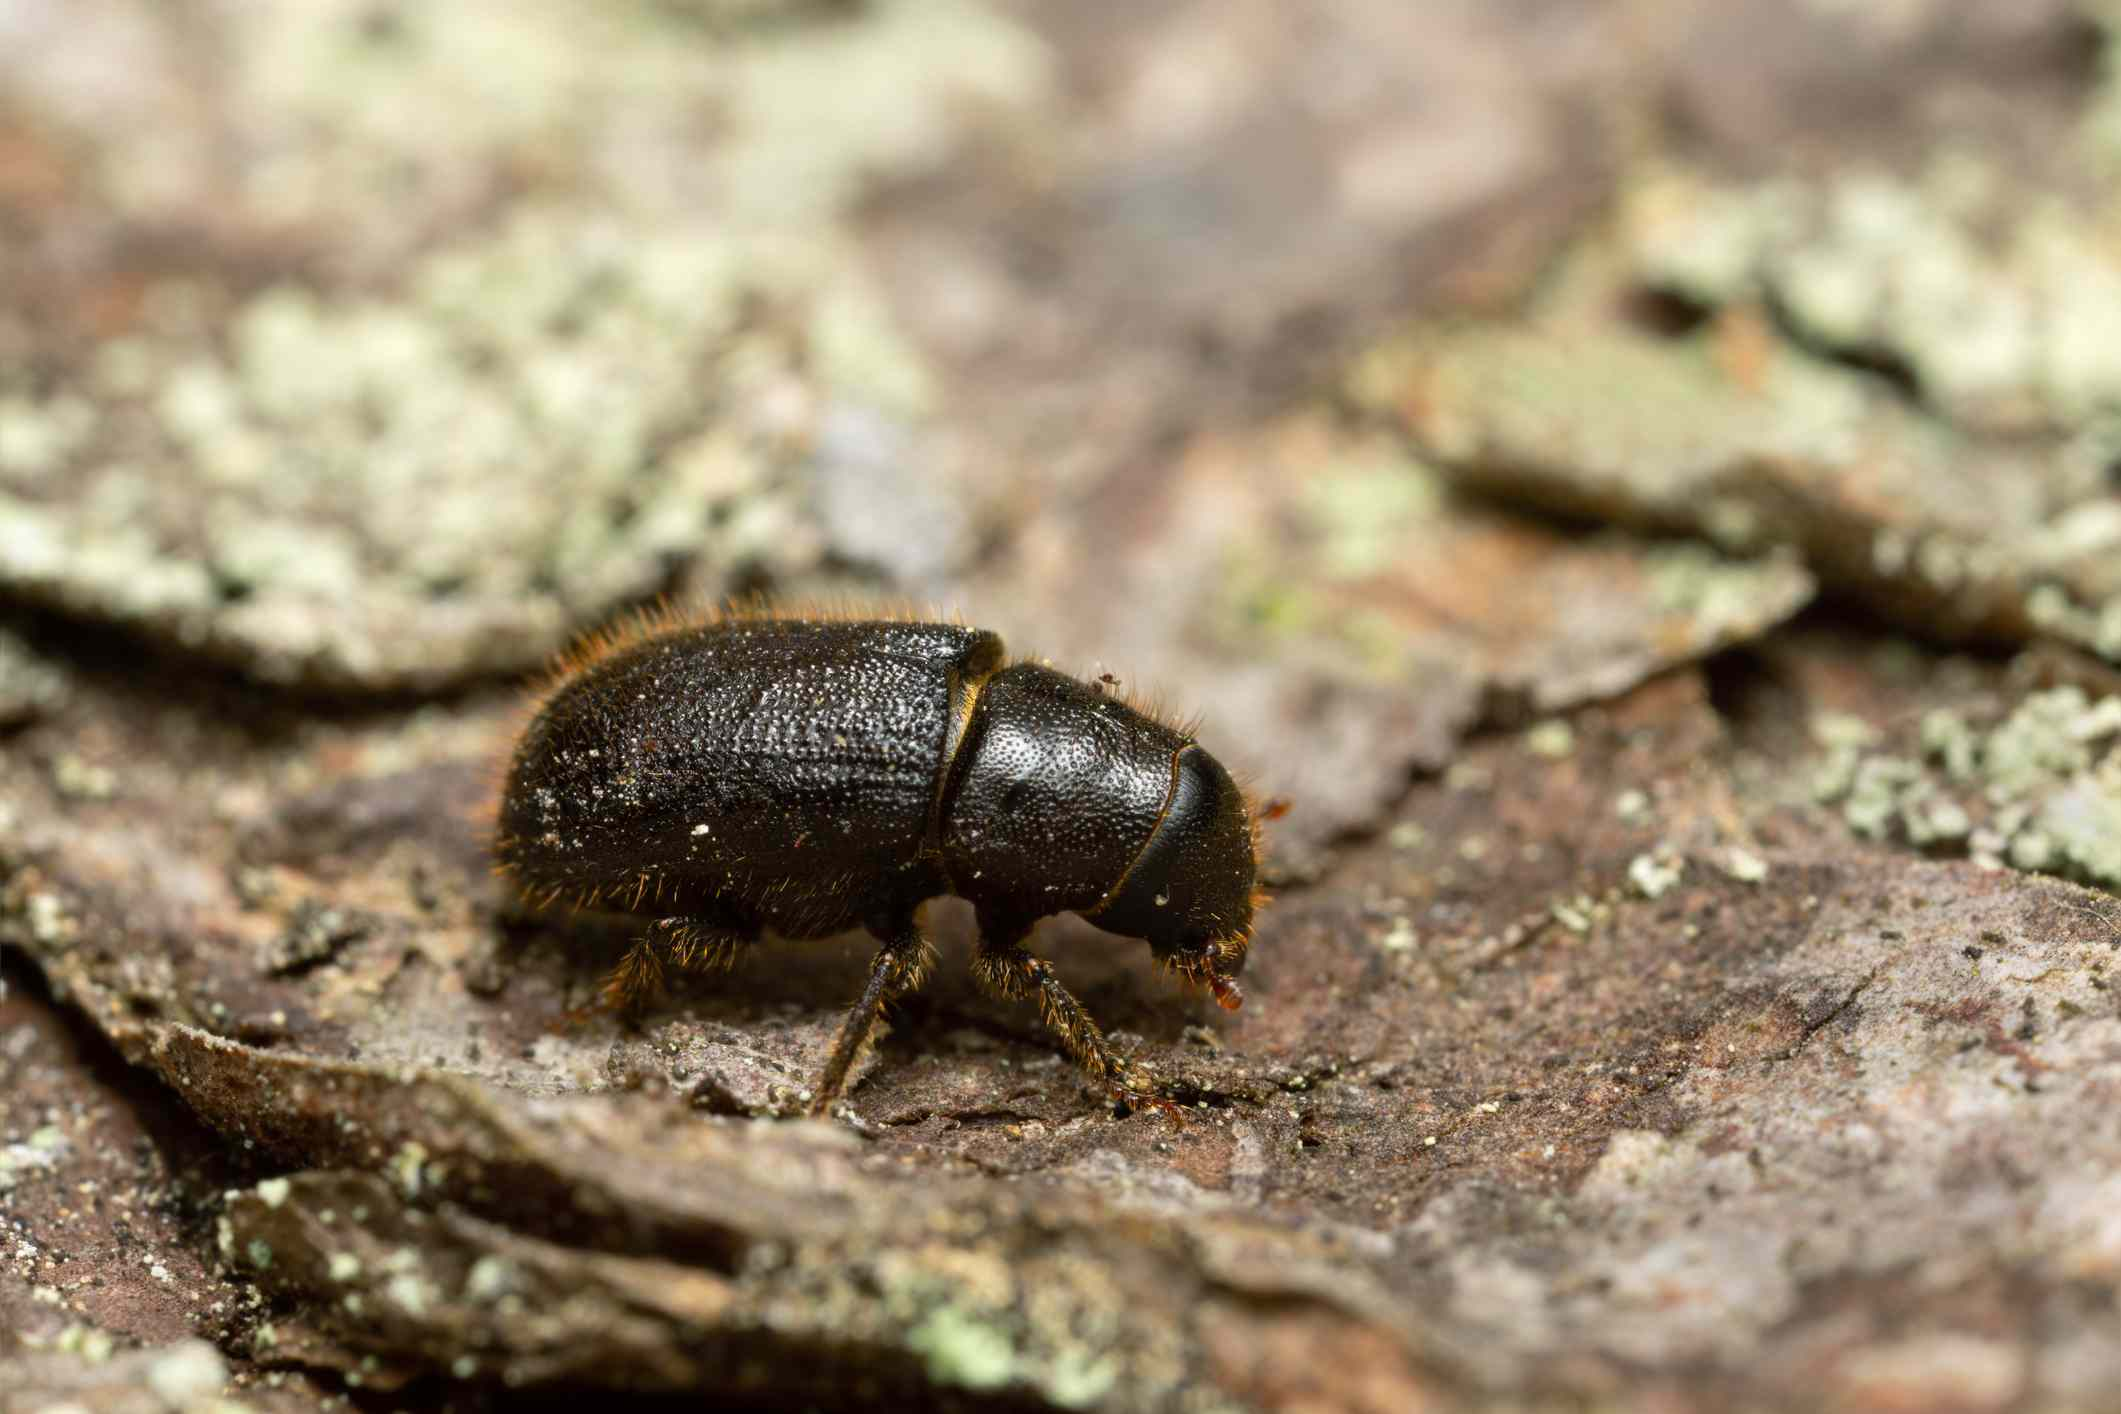 A magnified photo of a small, black beetle on tree bark